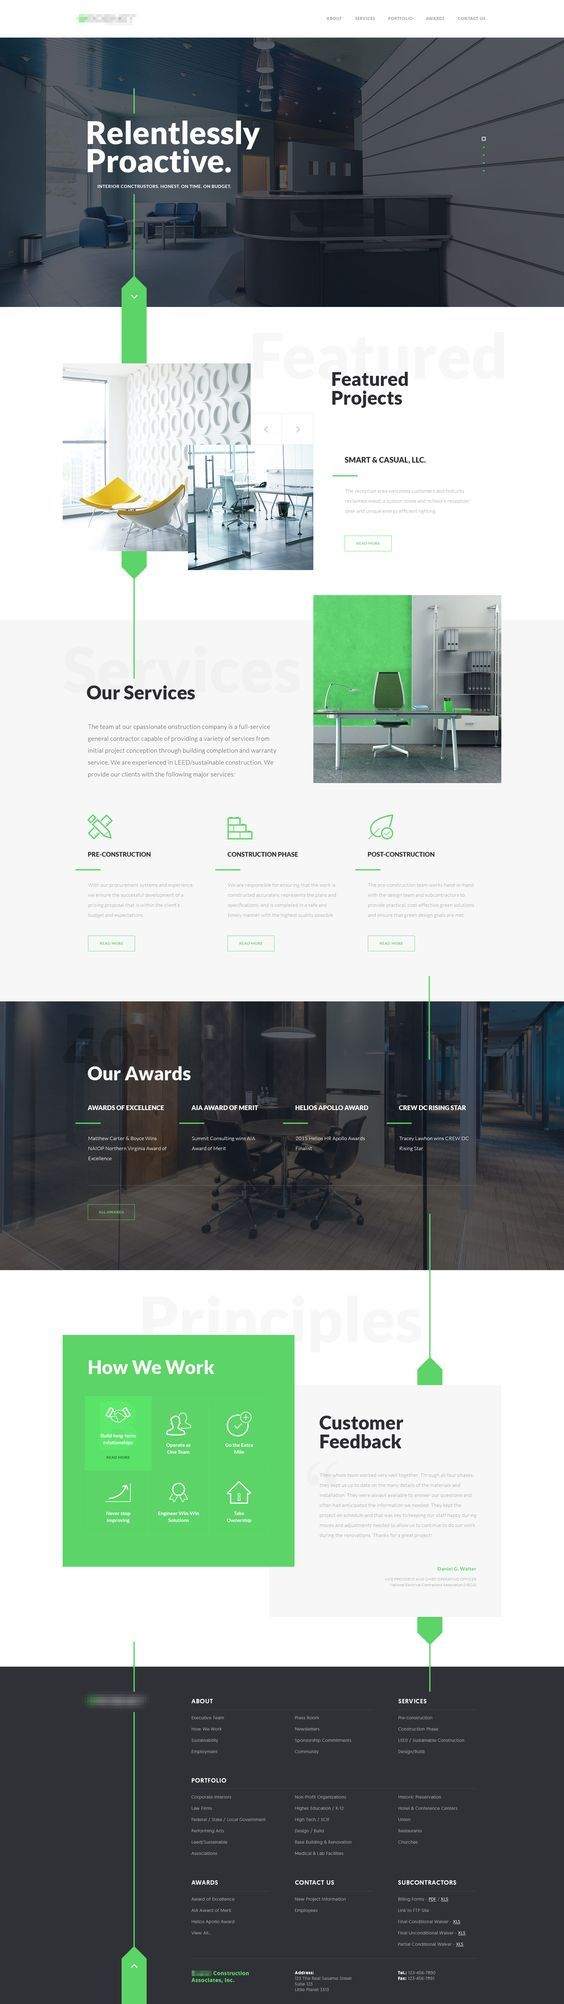 Interior Construction Company Website Design: